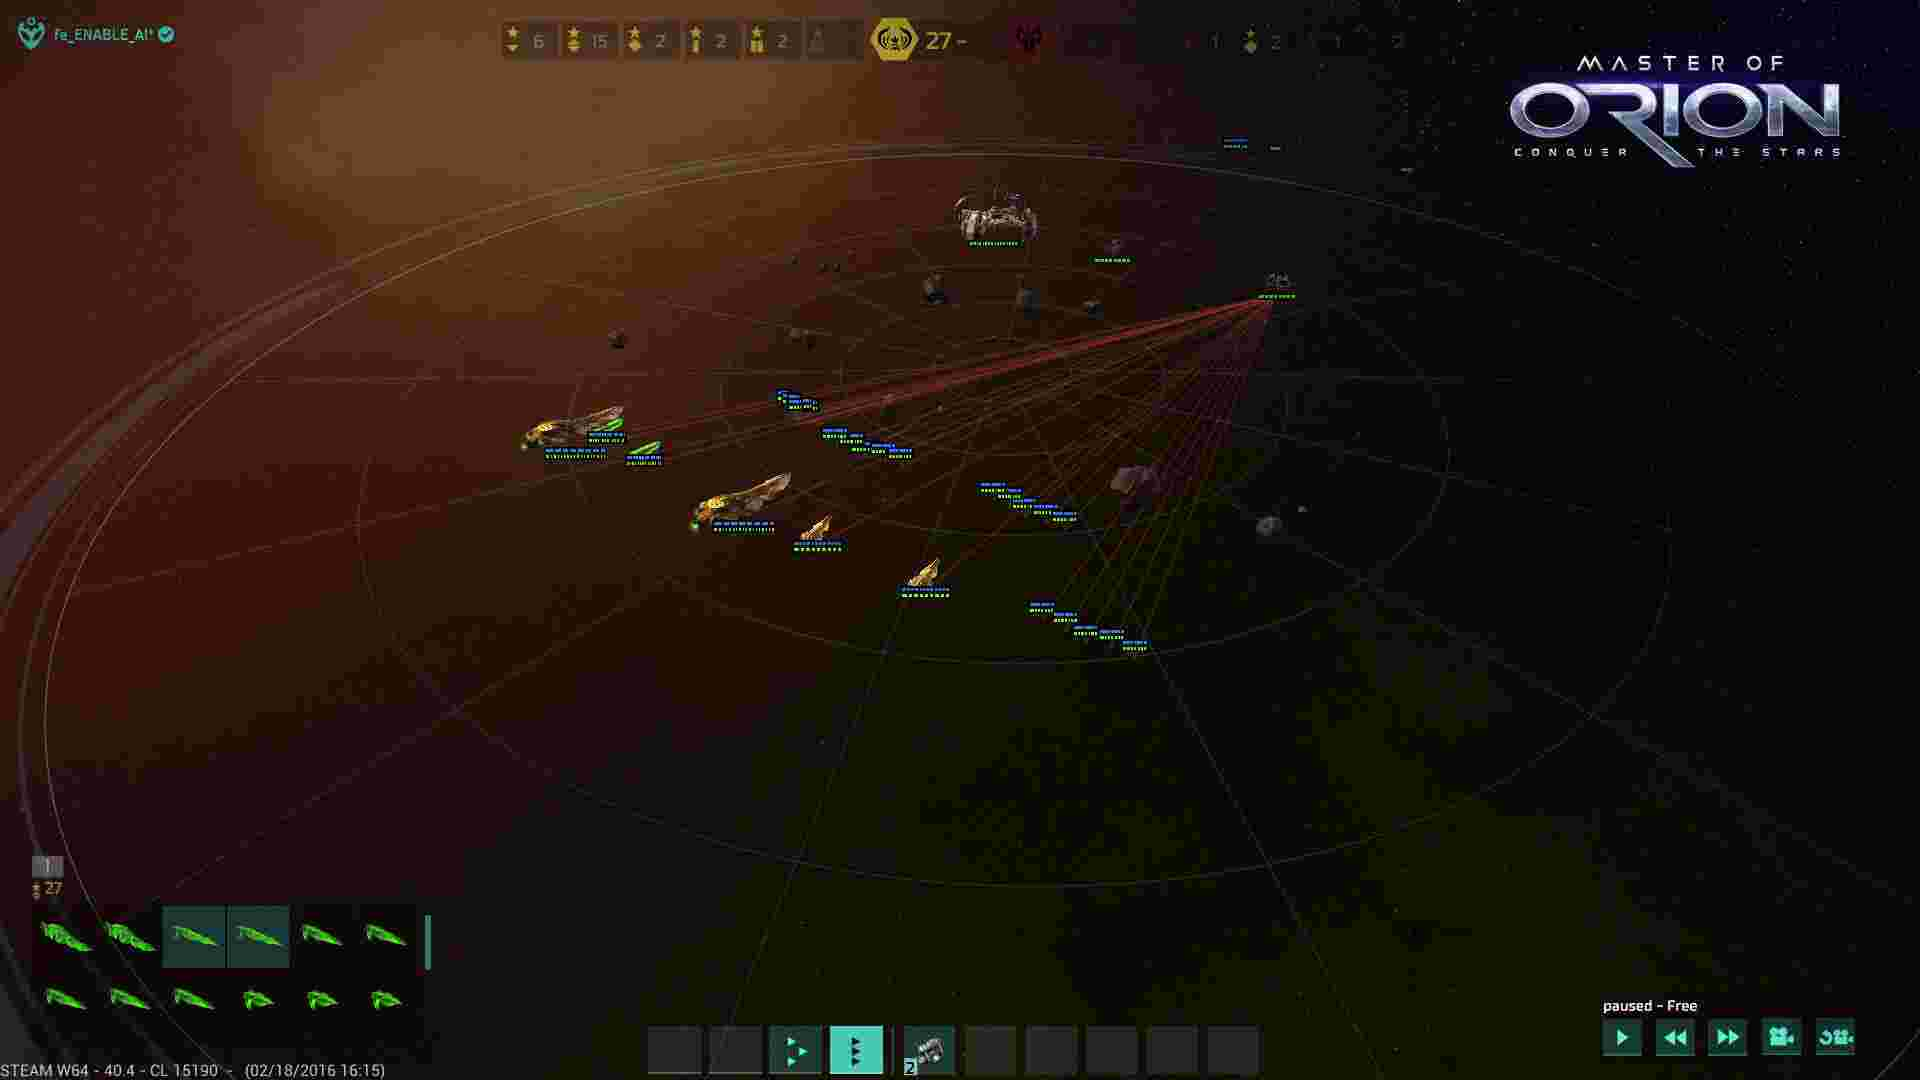 news.moo_screens_gameplay_early_access_image_02